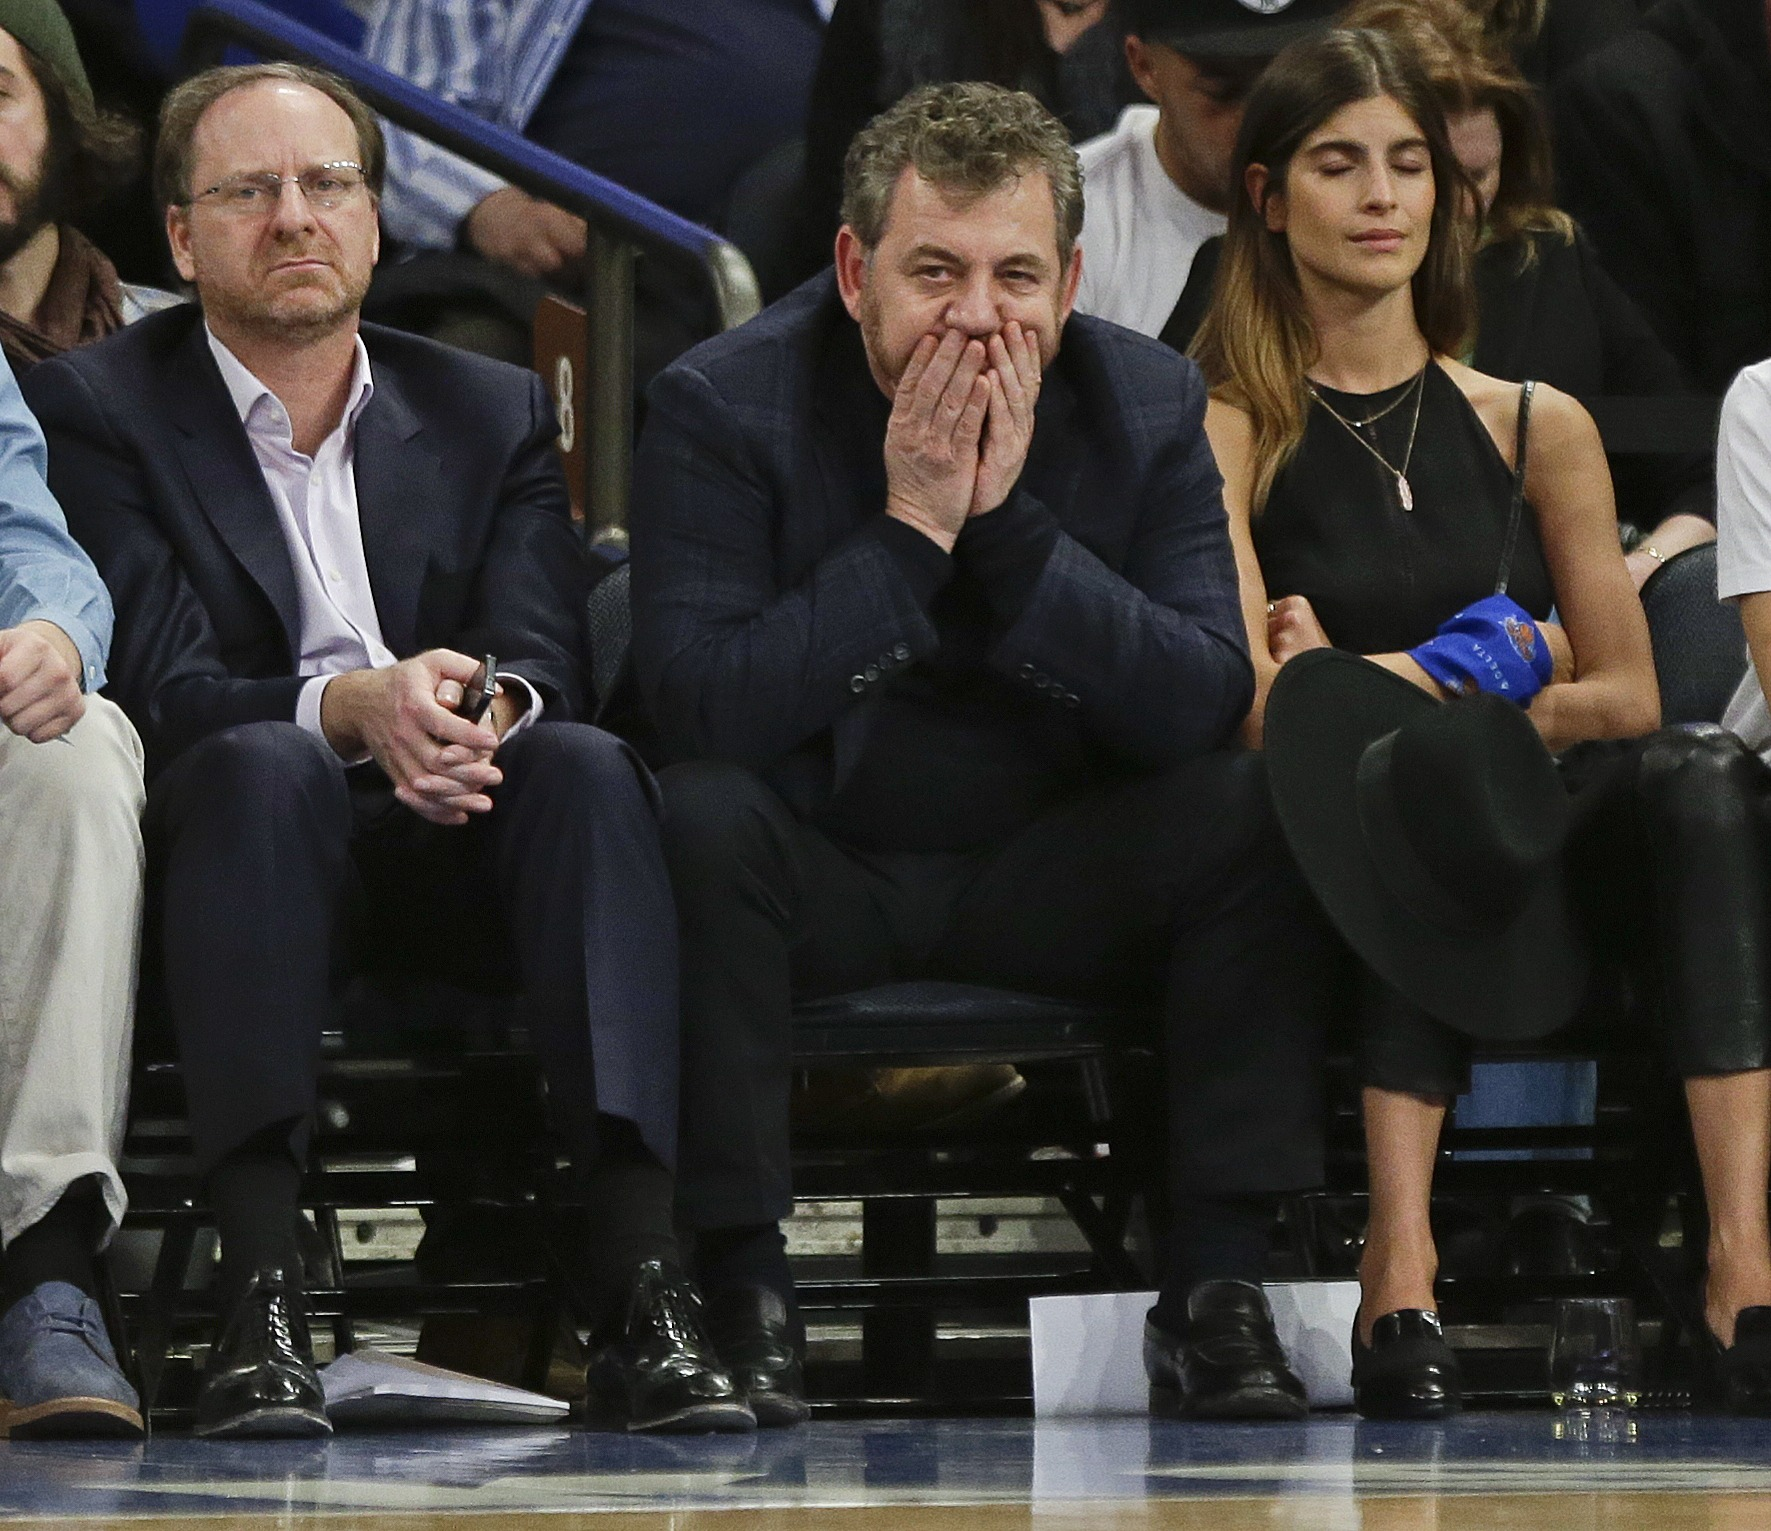 Owner James Dolan horrified at the mess of a team he helped create.